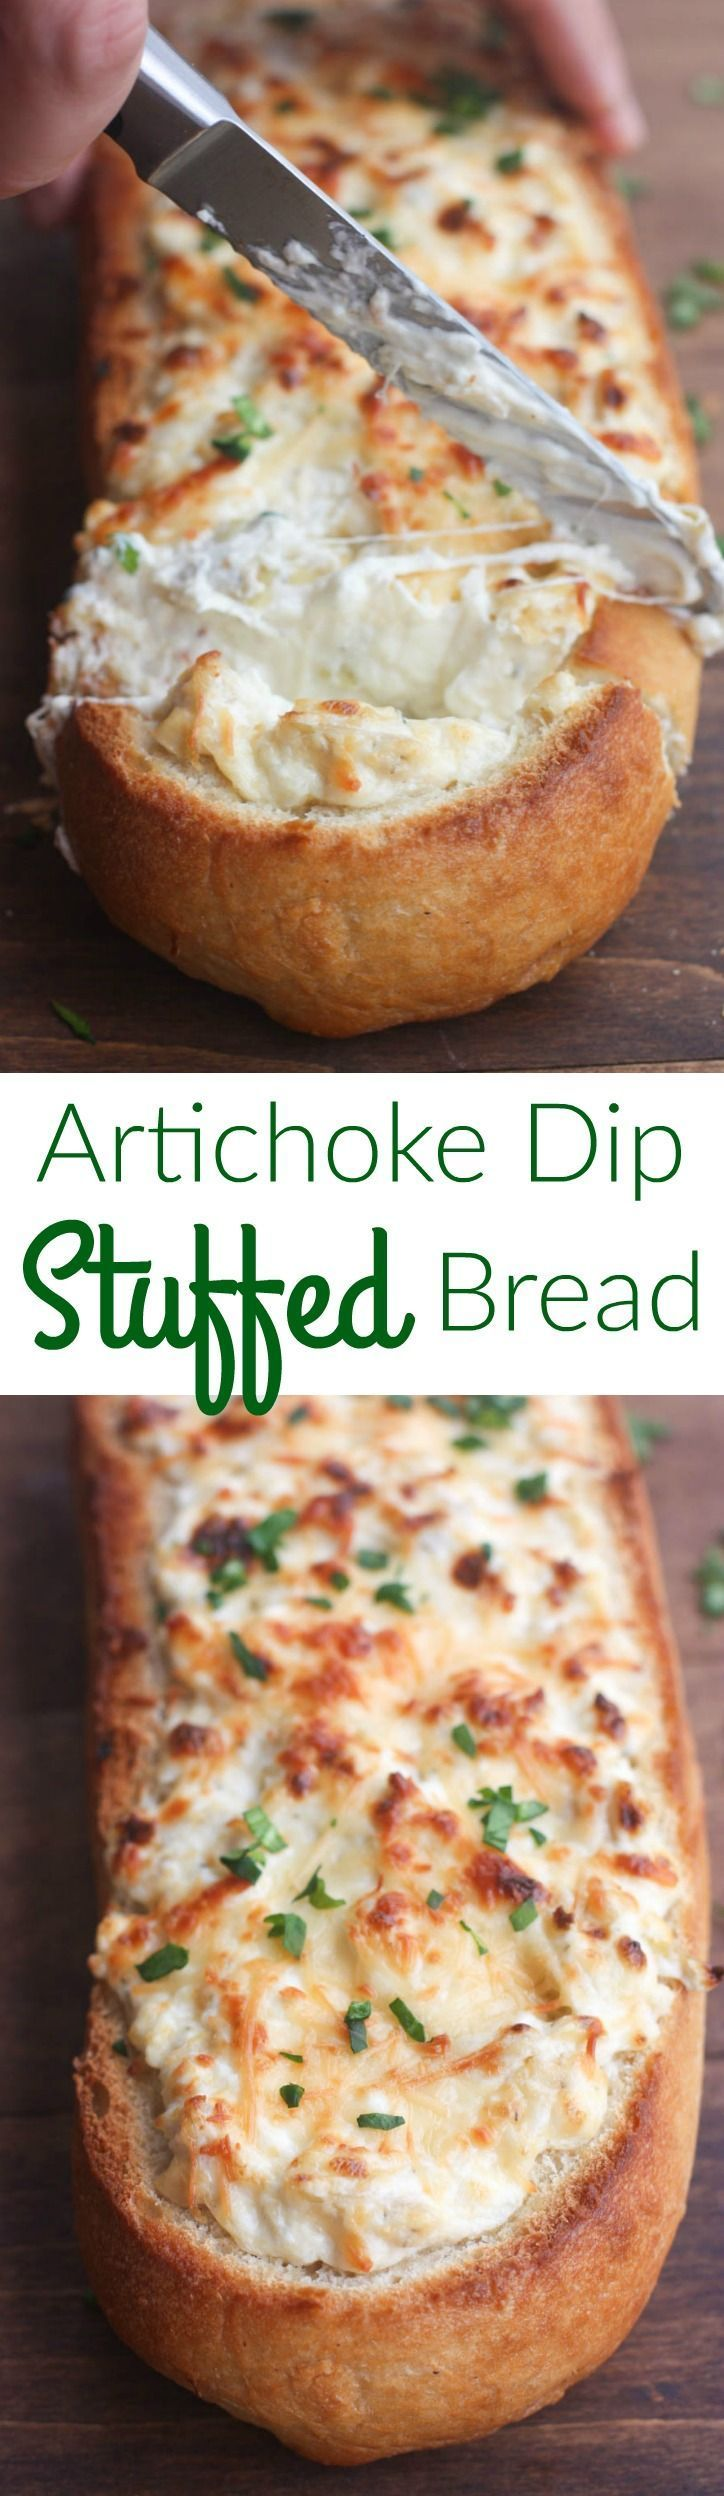 10 Homemade Stuffed Bread Recipes - our favorite hot stuffed bread recipes from breakfast to dessert!